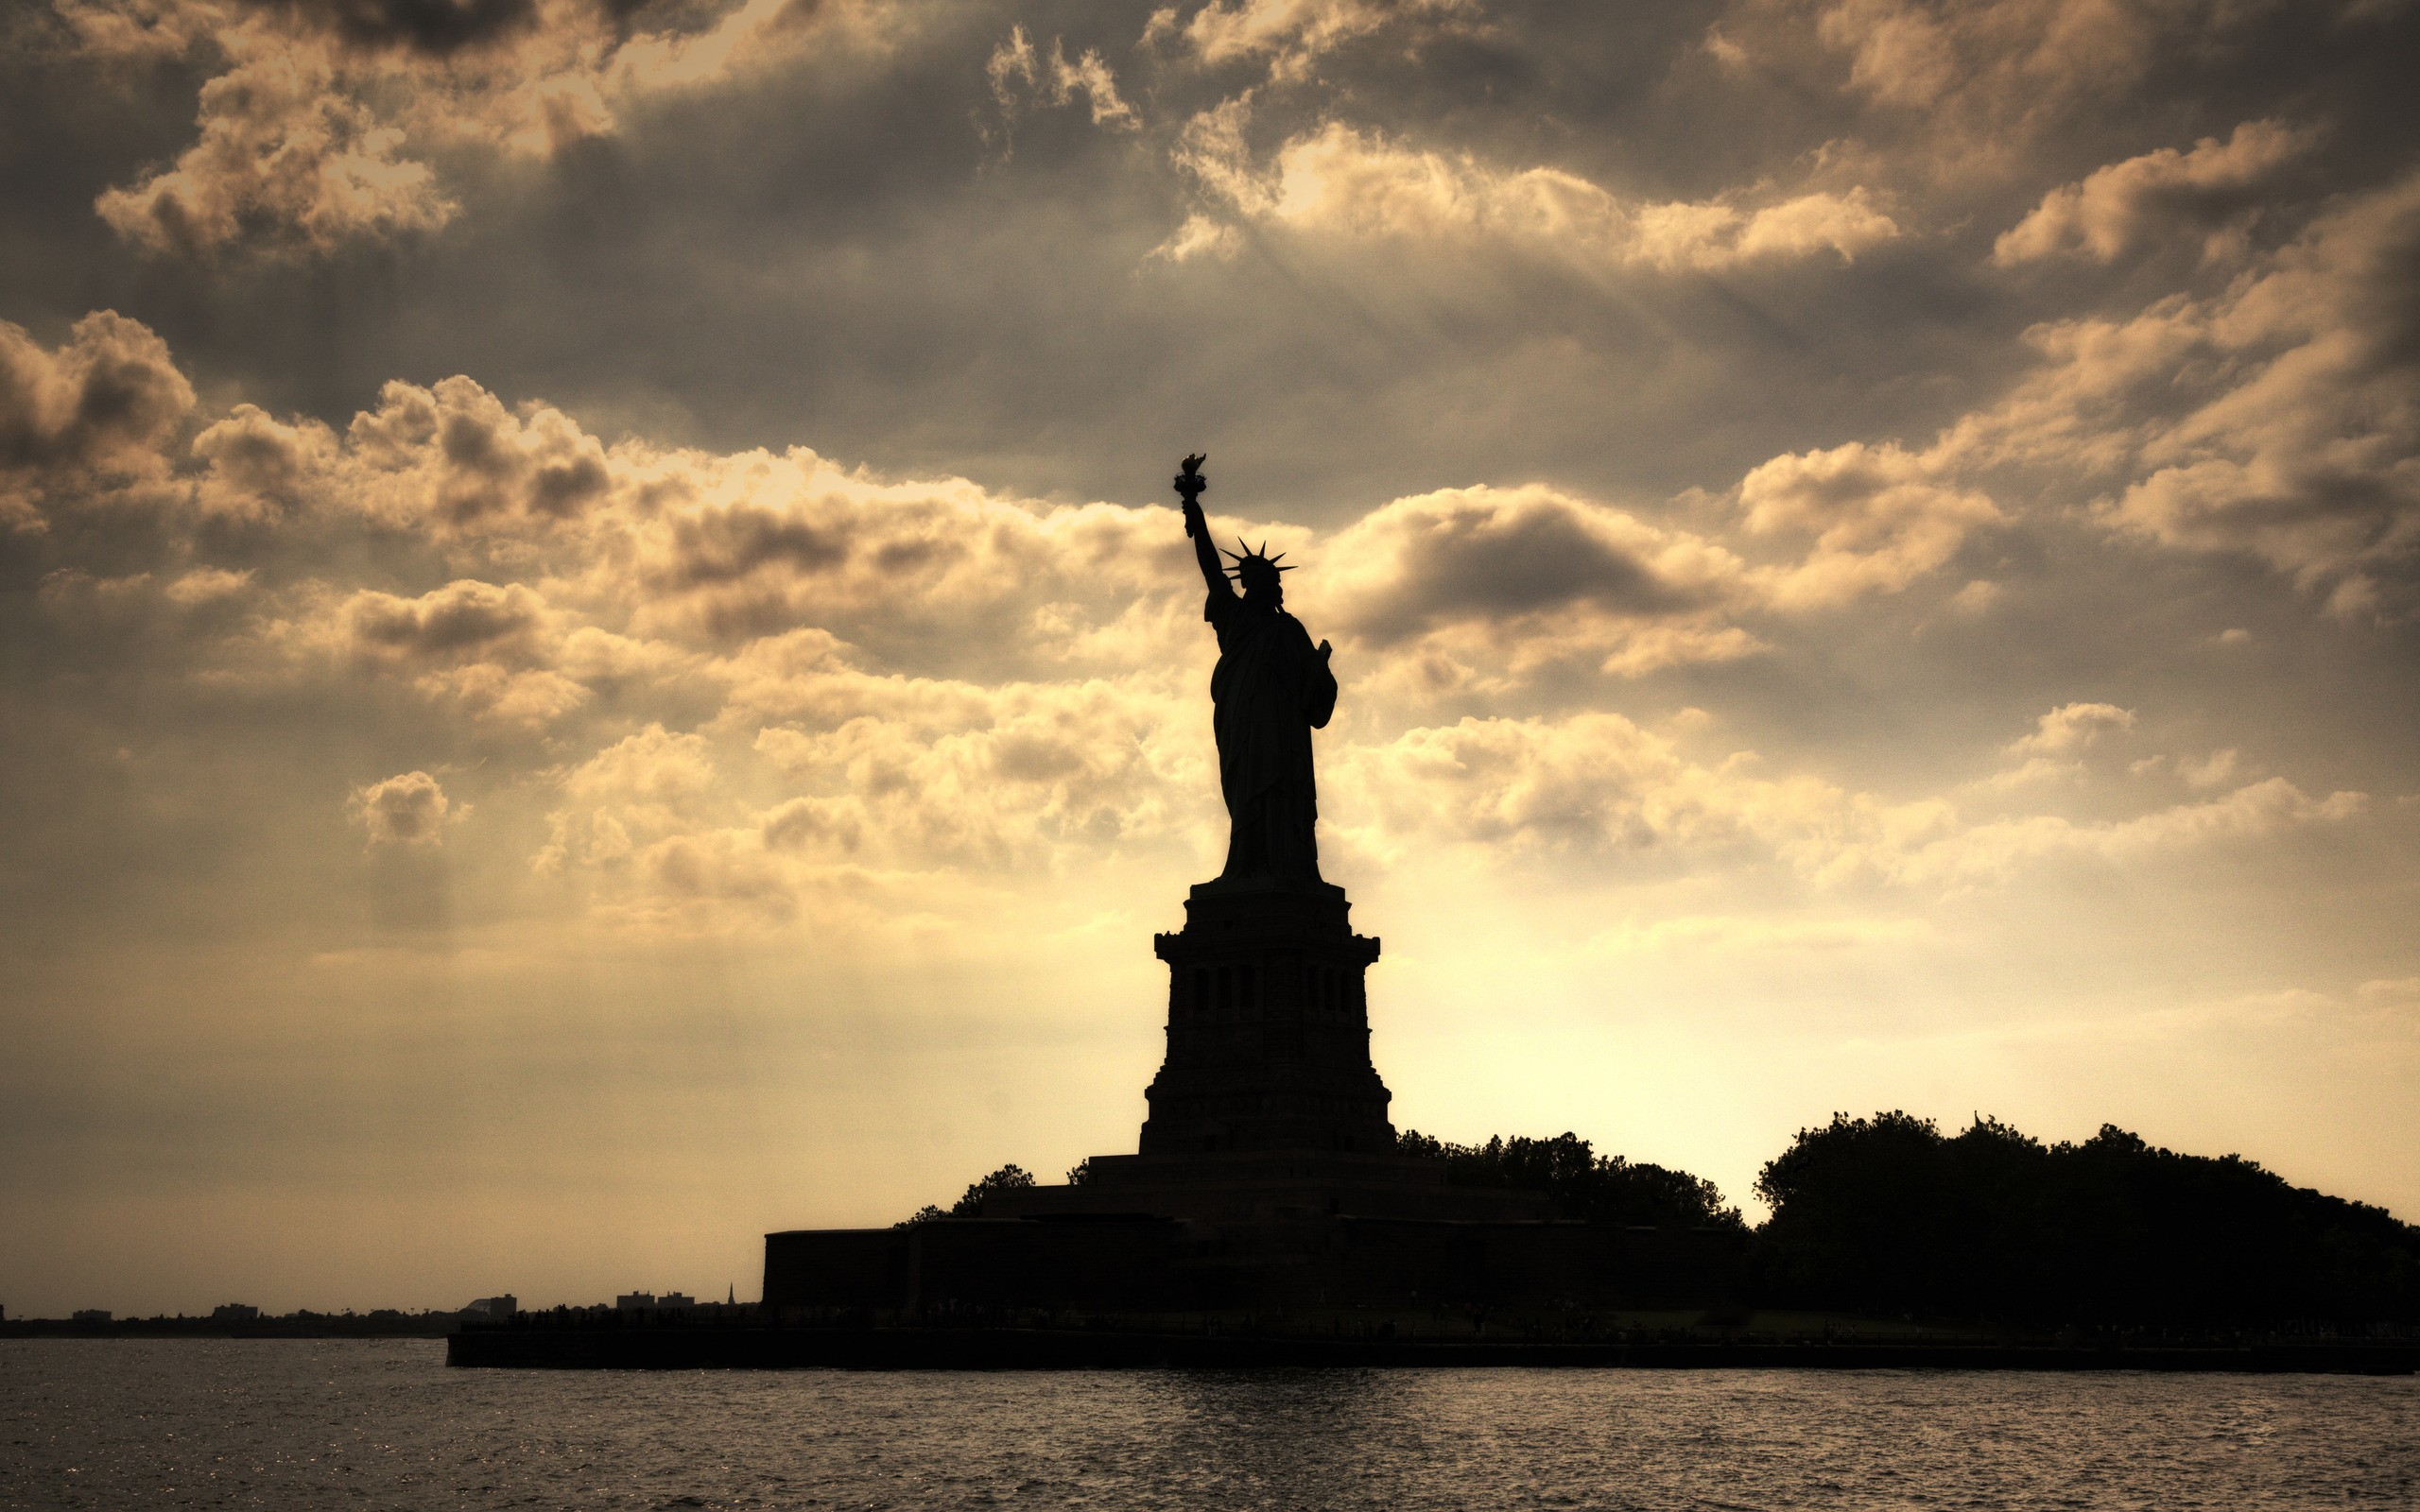 Colossal Statue Of Liberty Wallpaper – Travel HD Wallpapers